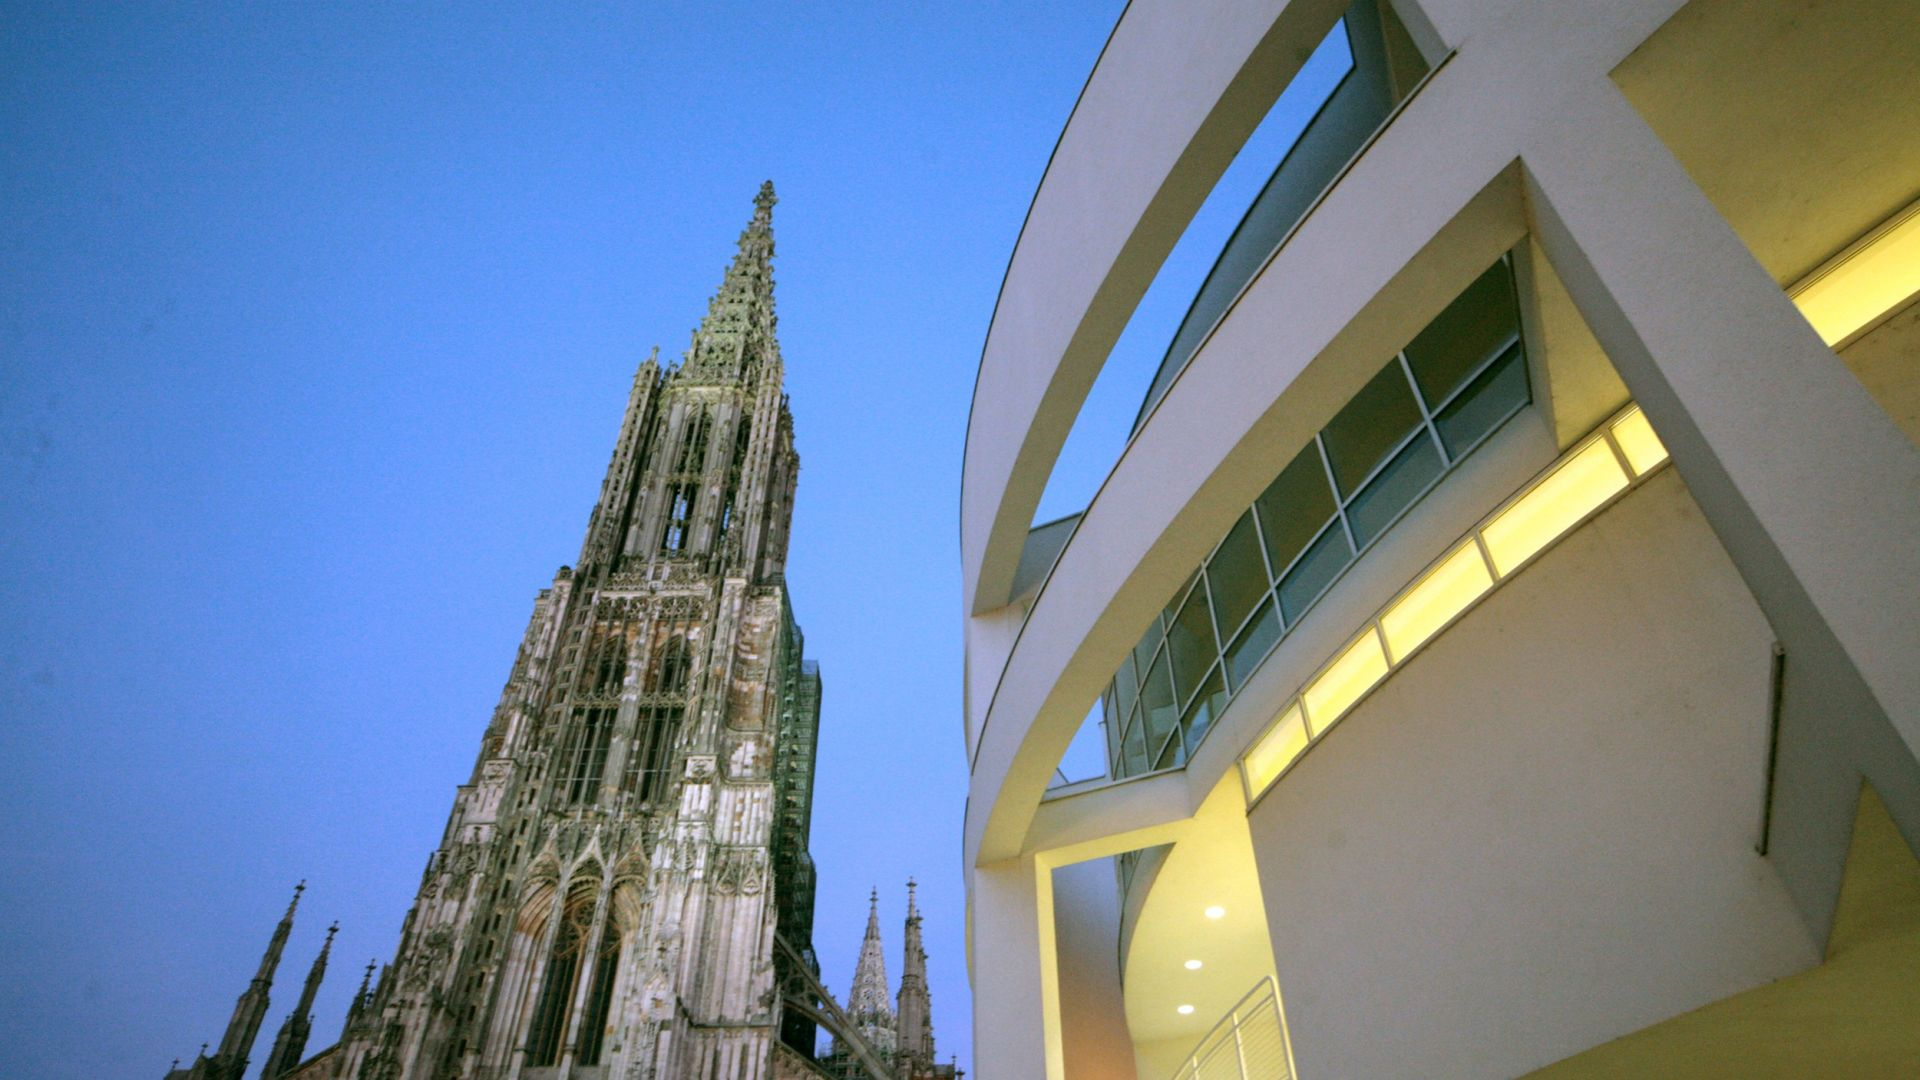 Ulm: Cathedral and townhall